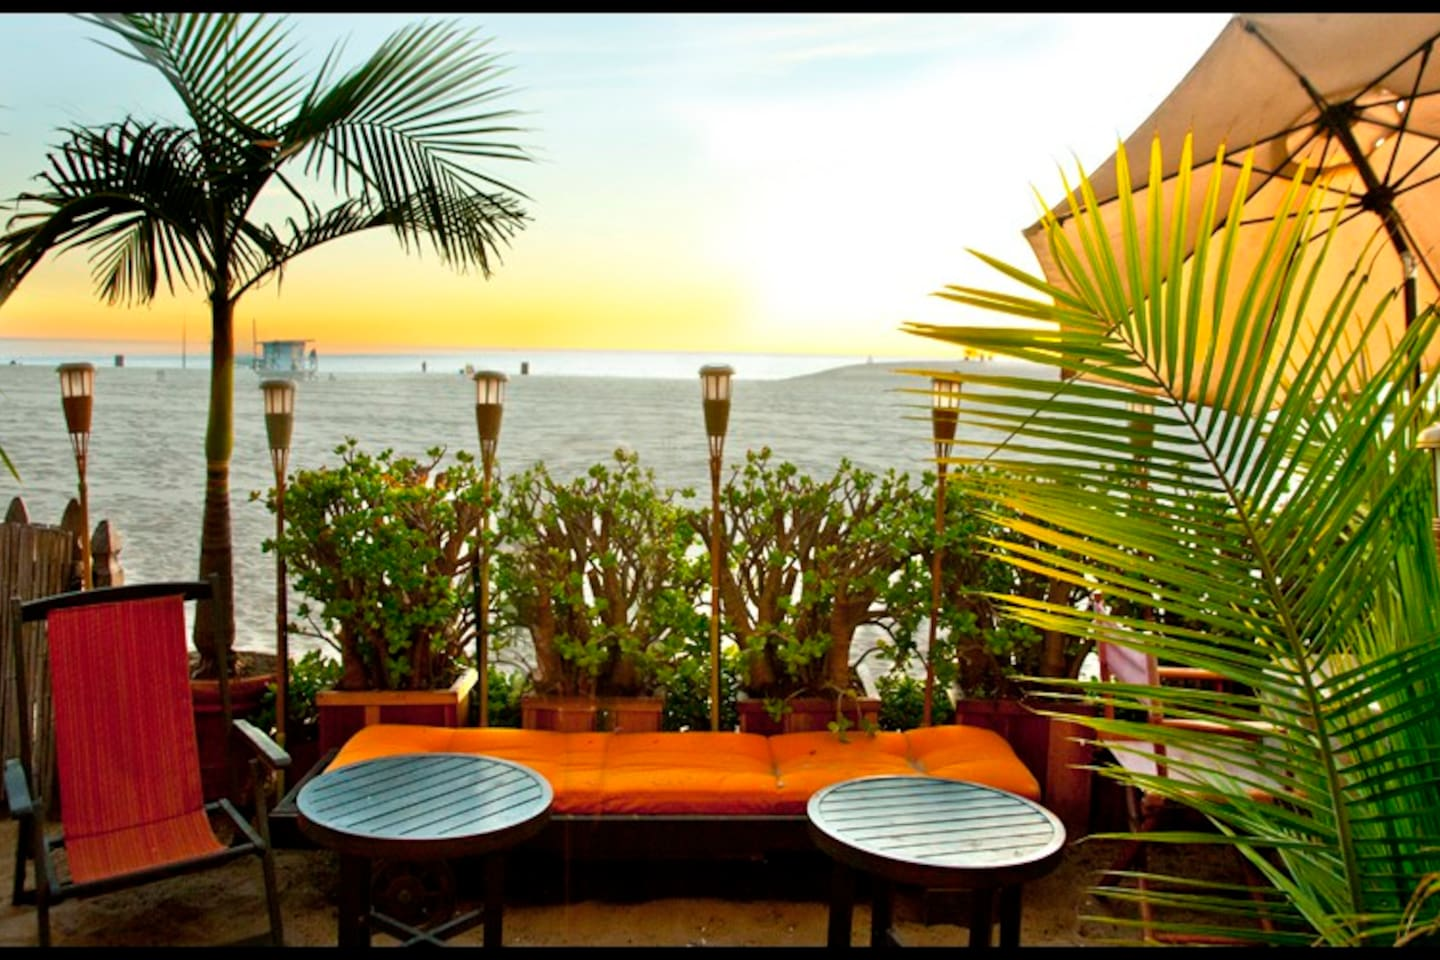 Enjoy our two sun lounge chairs and outdoor dining table right on the beach.